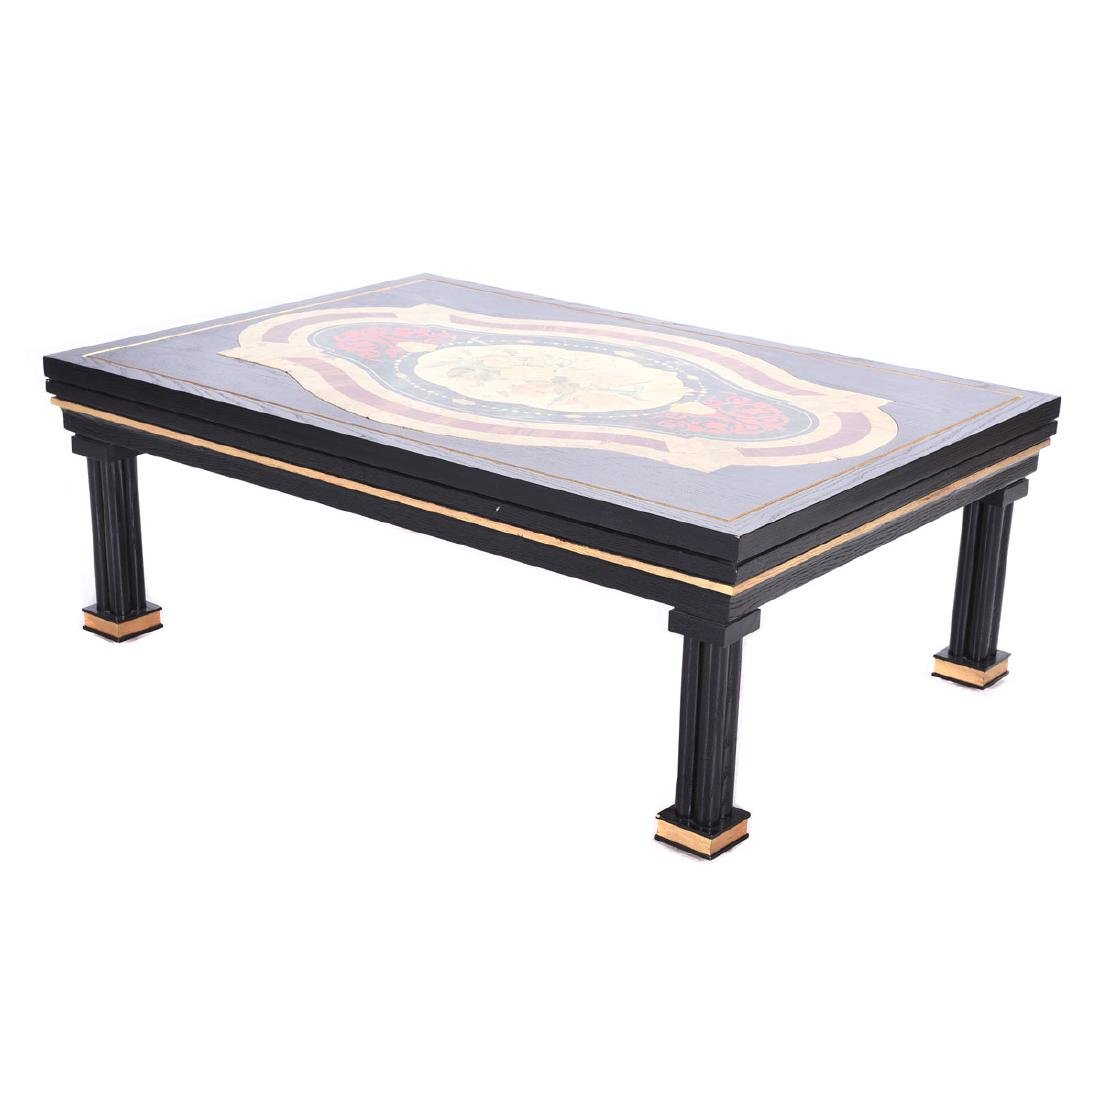 Baroque Style Ebonized and Gilt Coffee Table with